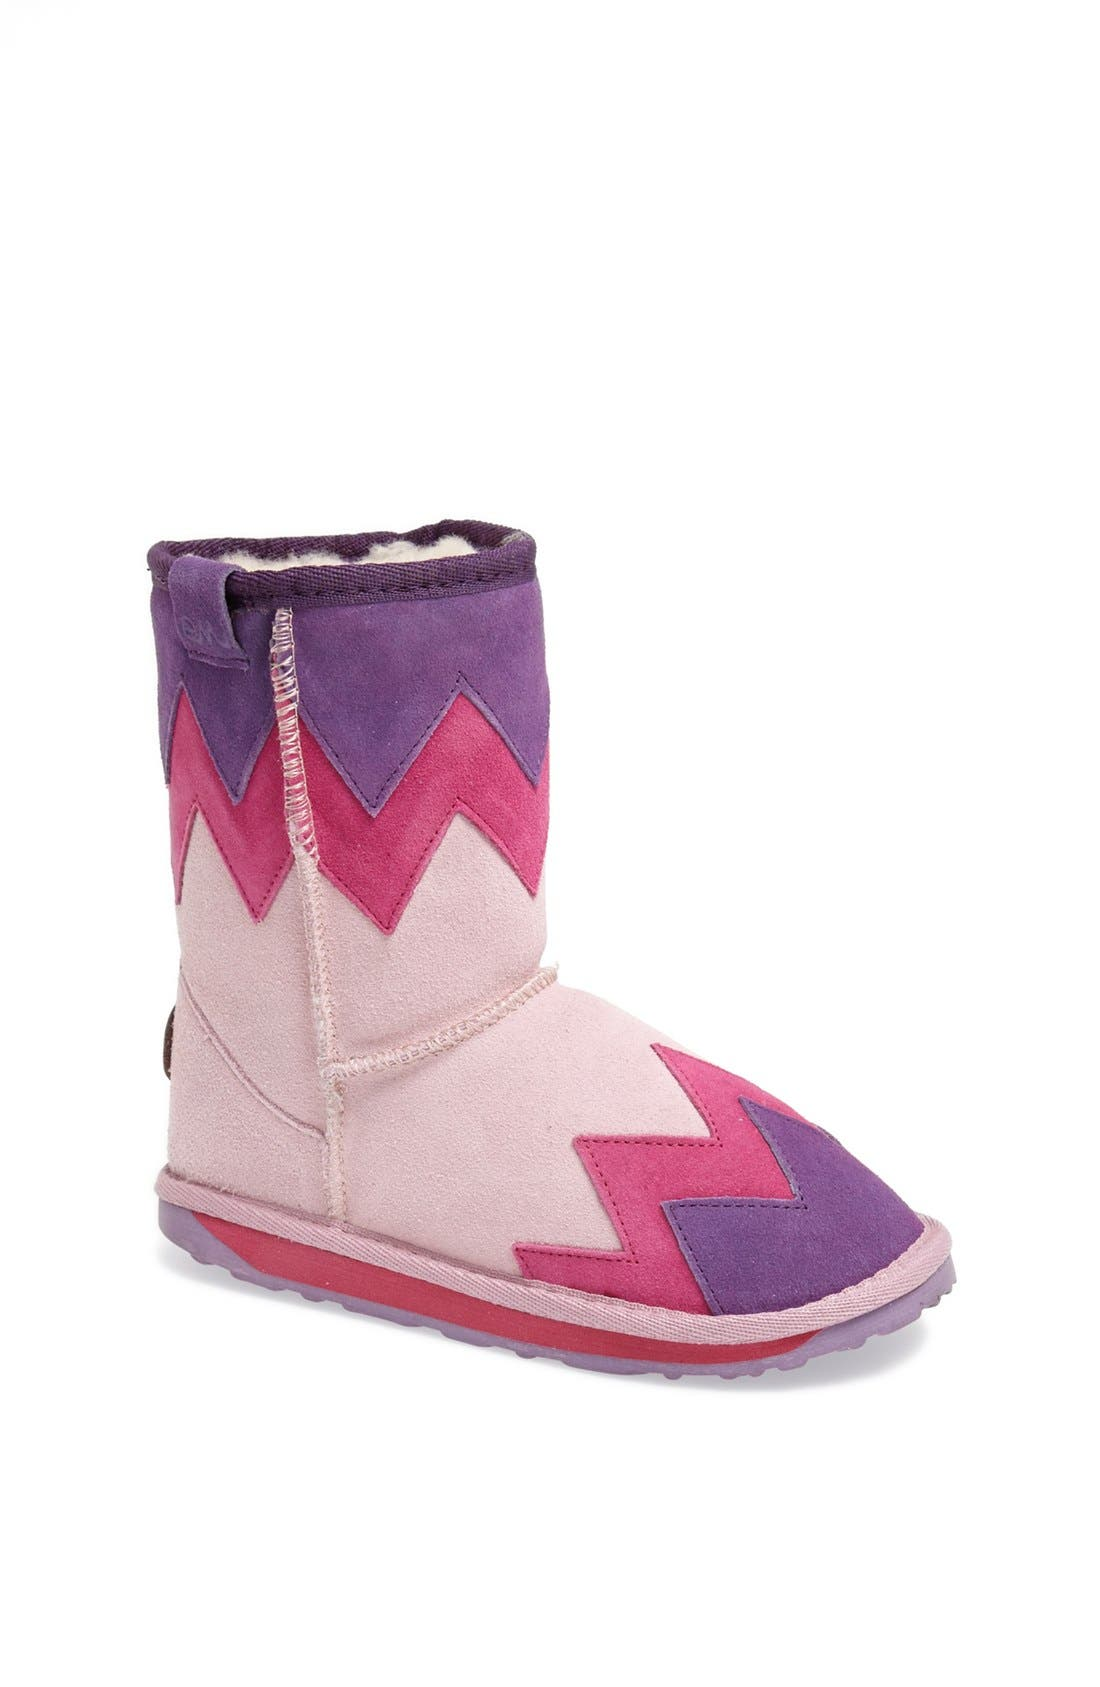 Alternate Image 1 Selected - EMU Australia 'Pow Pow' Boot (Toddler, Little Kid & Big Kid)